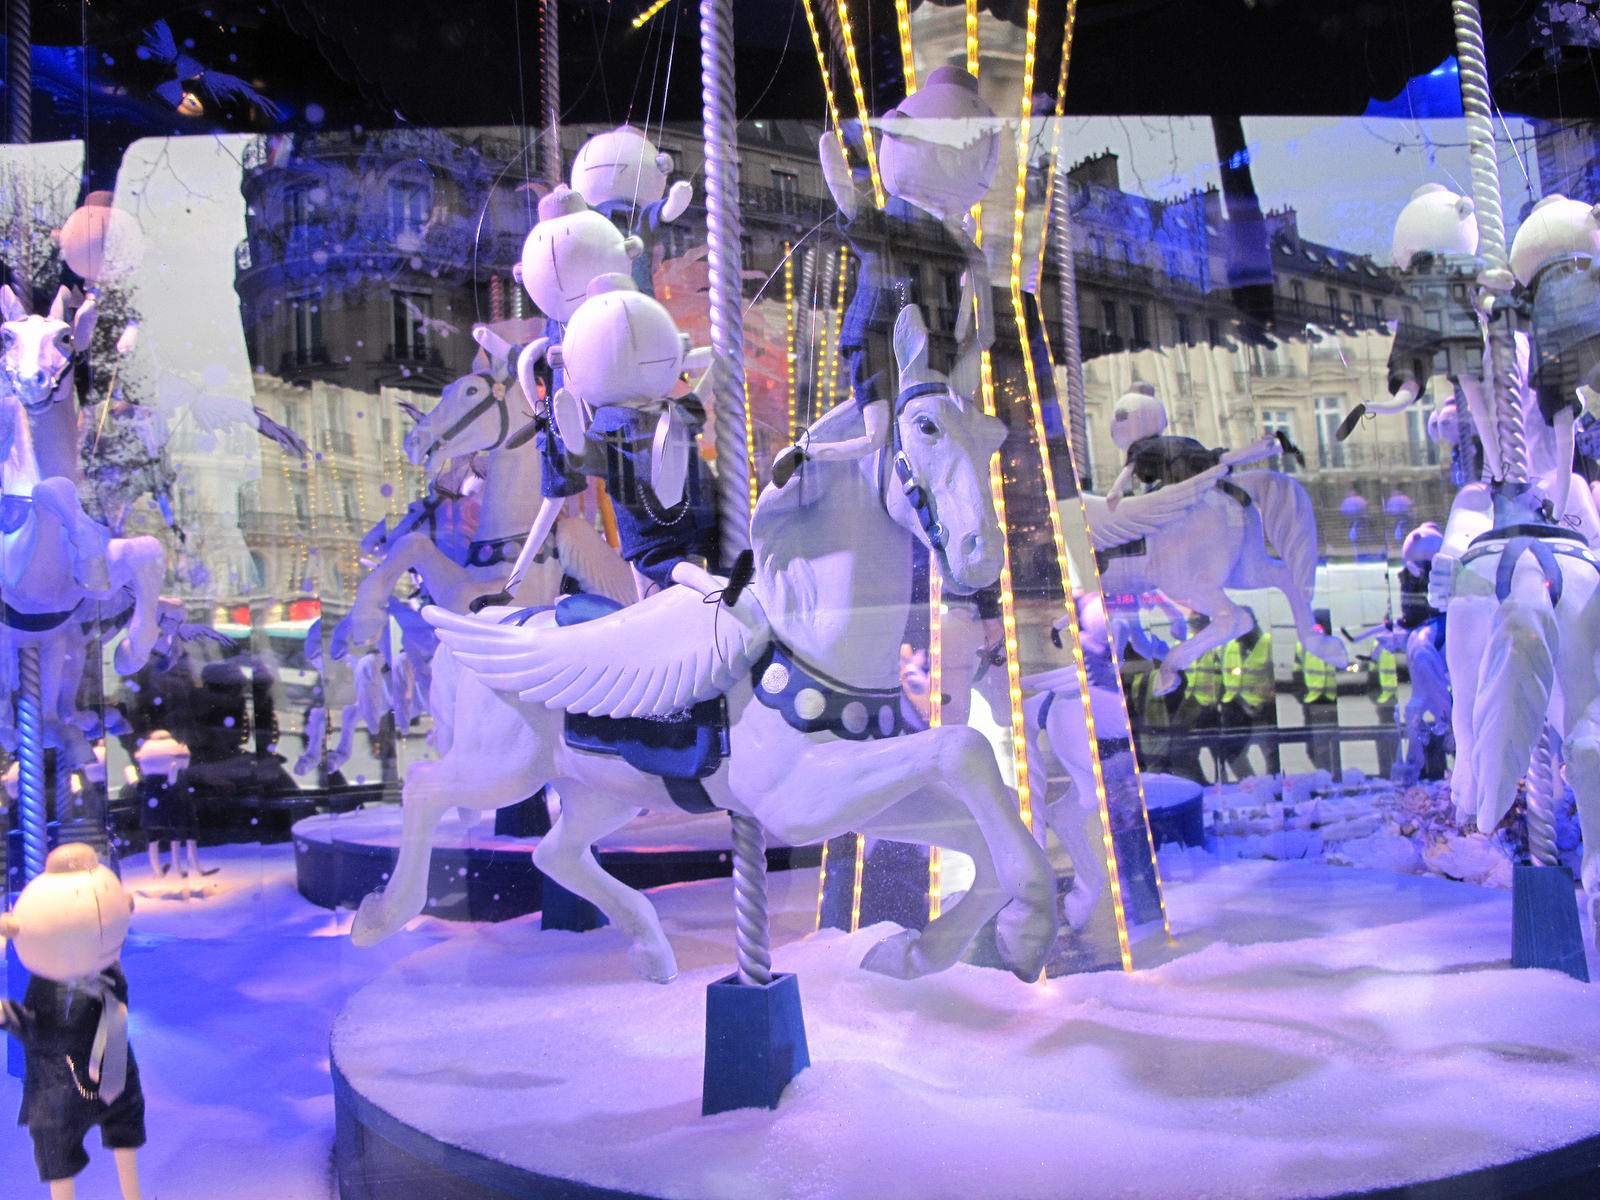 vitrines noel14 Christmas window displays in Paris